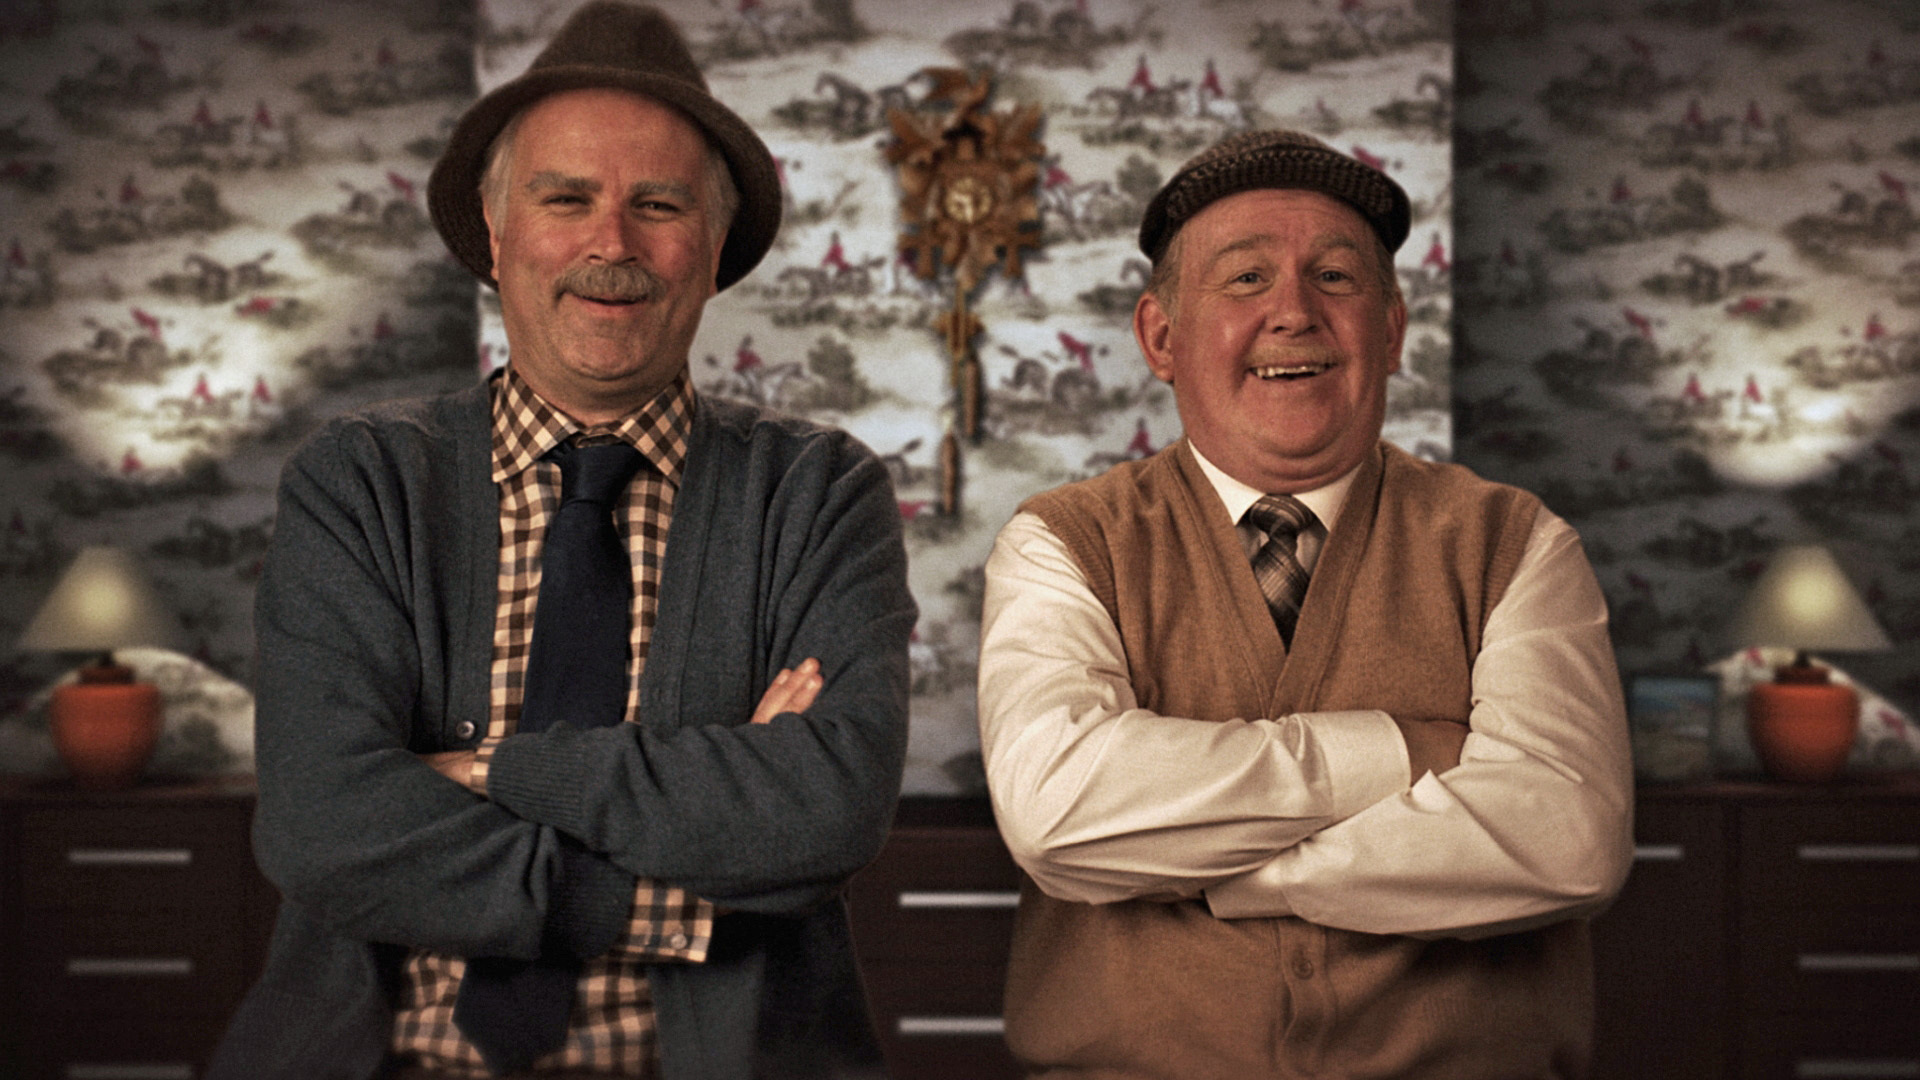 Fans only have two more episodes of Jack and Victor left, as the last episode airs on Thursday 28 March.